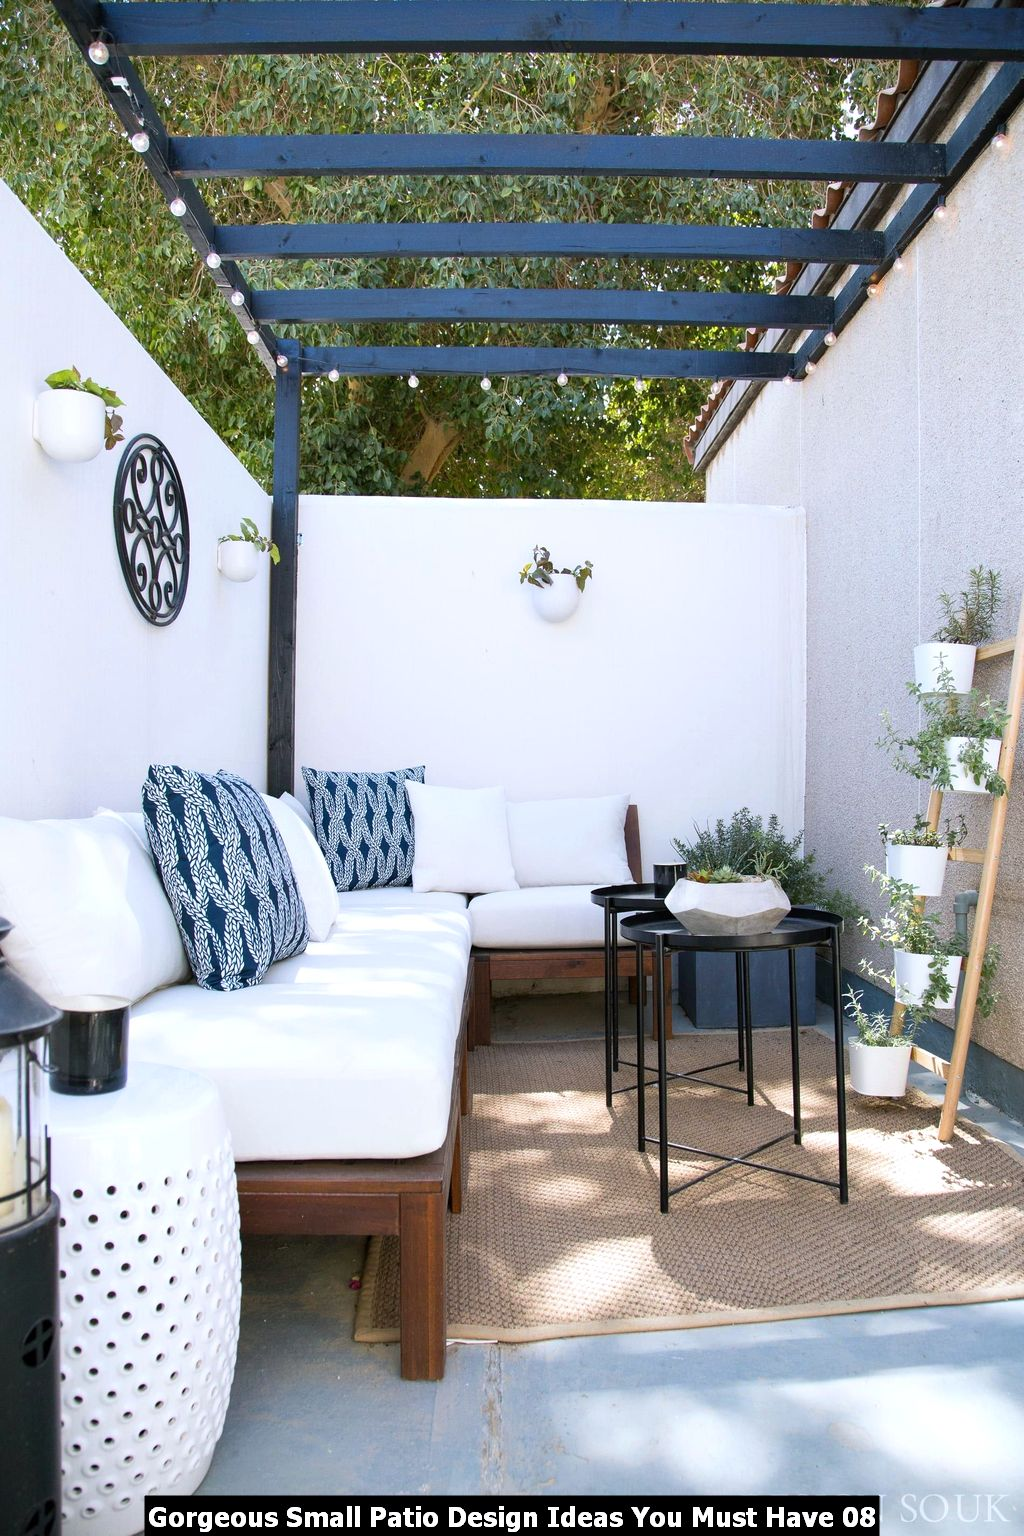 Gorgeous Small Patio Design Ideas You Must Have 08